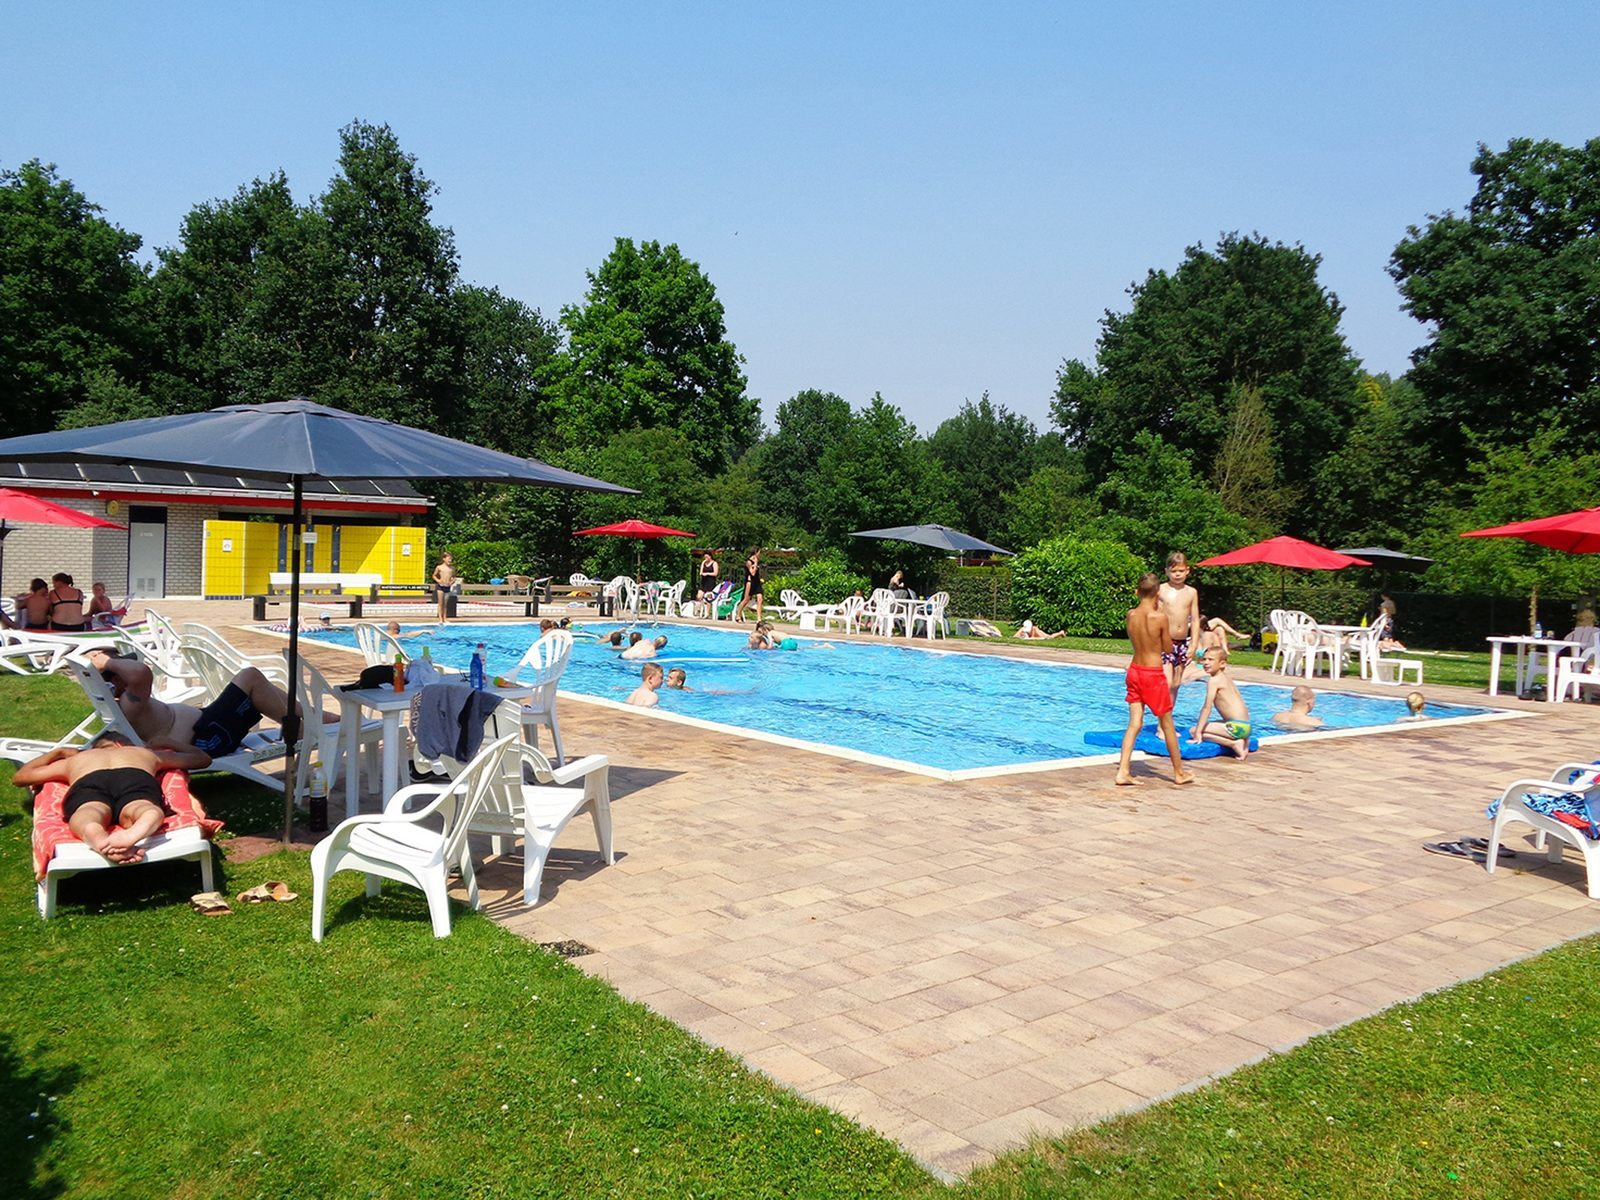 Heated outdoor swimming pool with children's pool